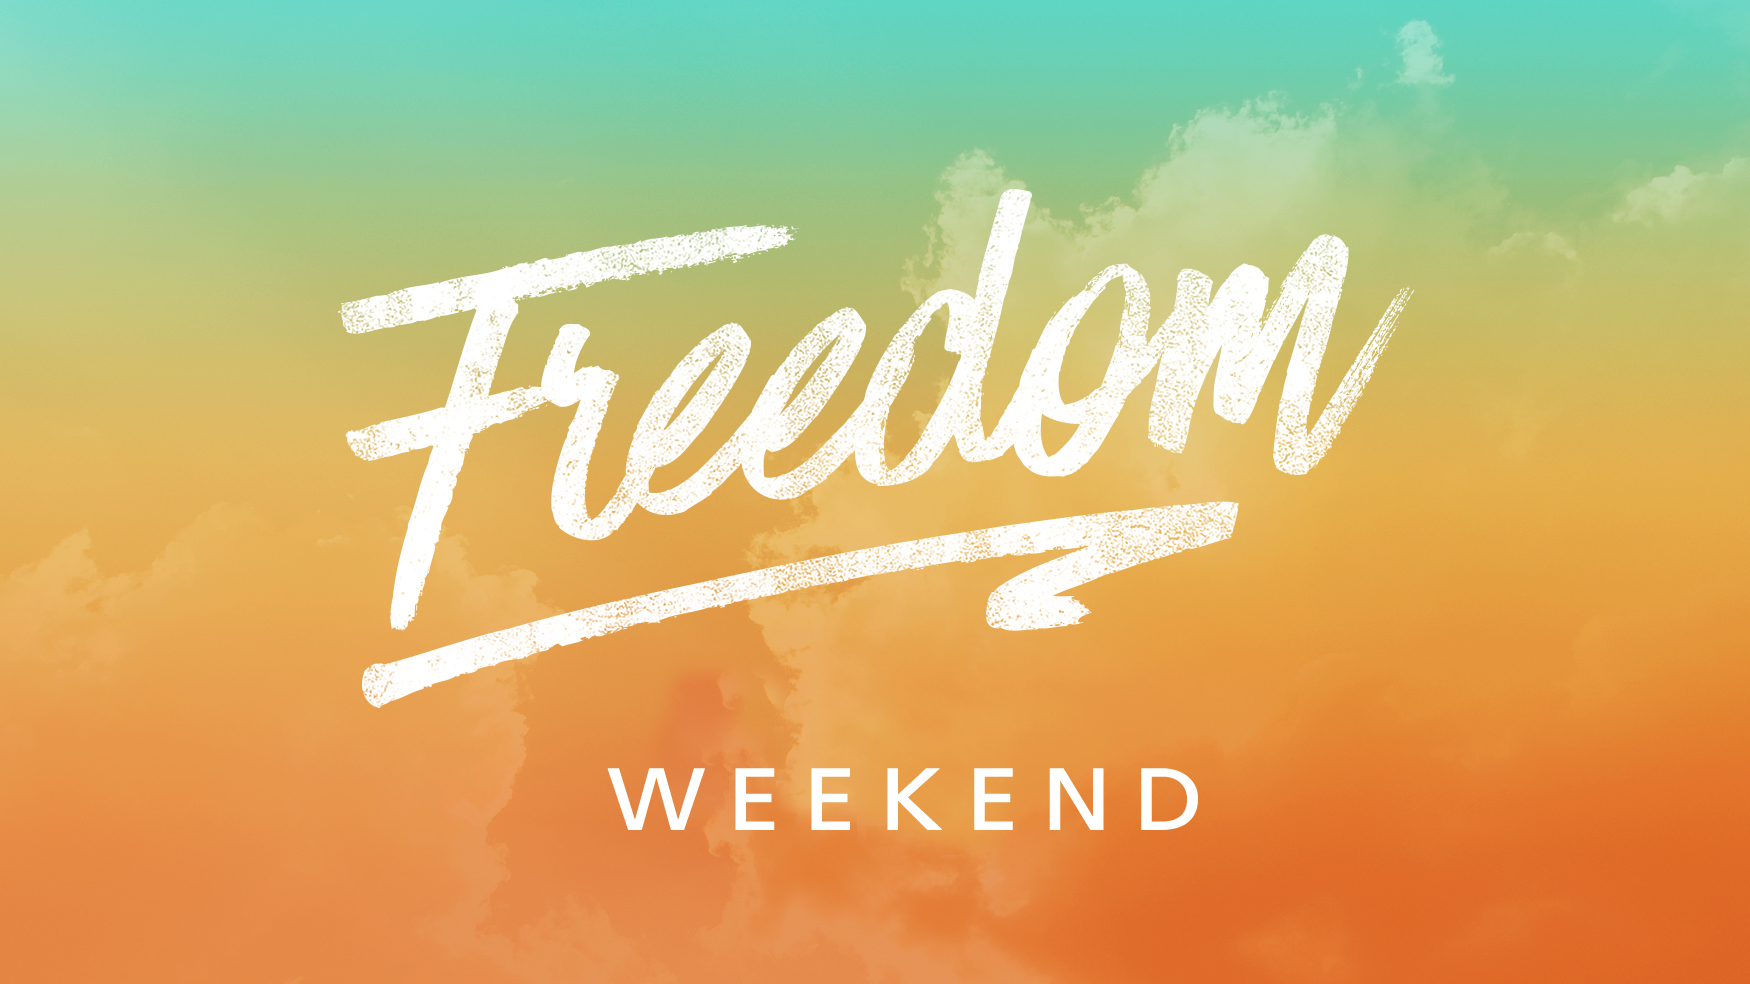 Freedom weekend event graphic